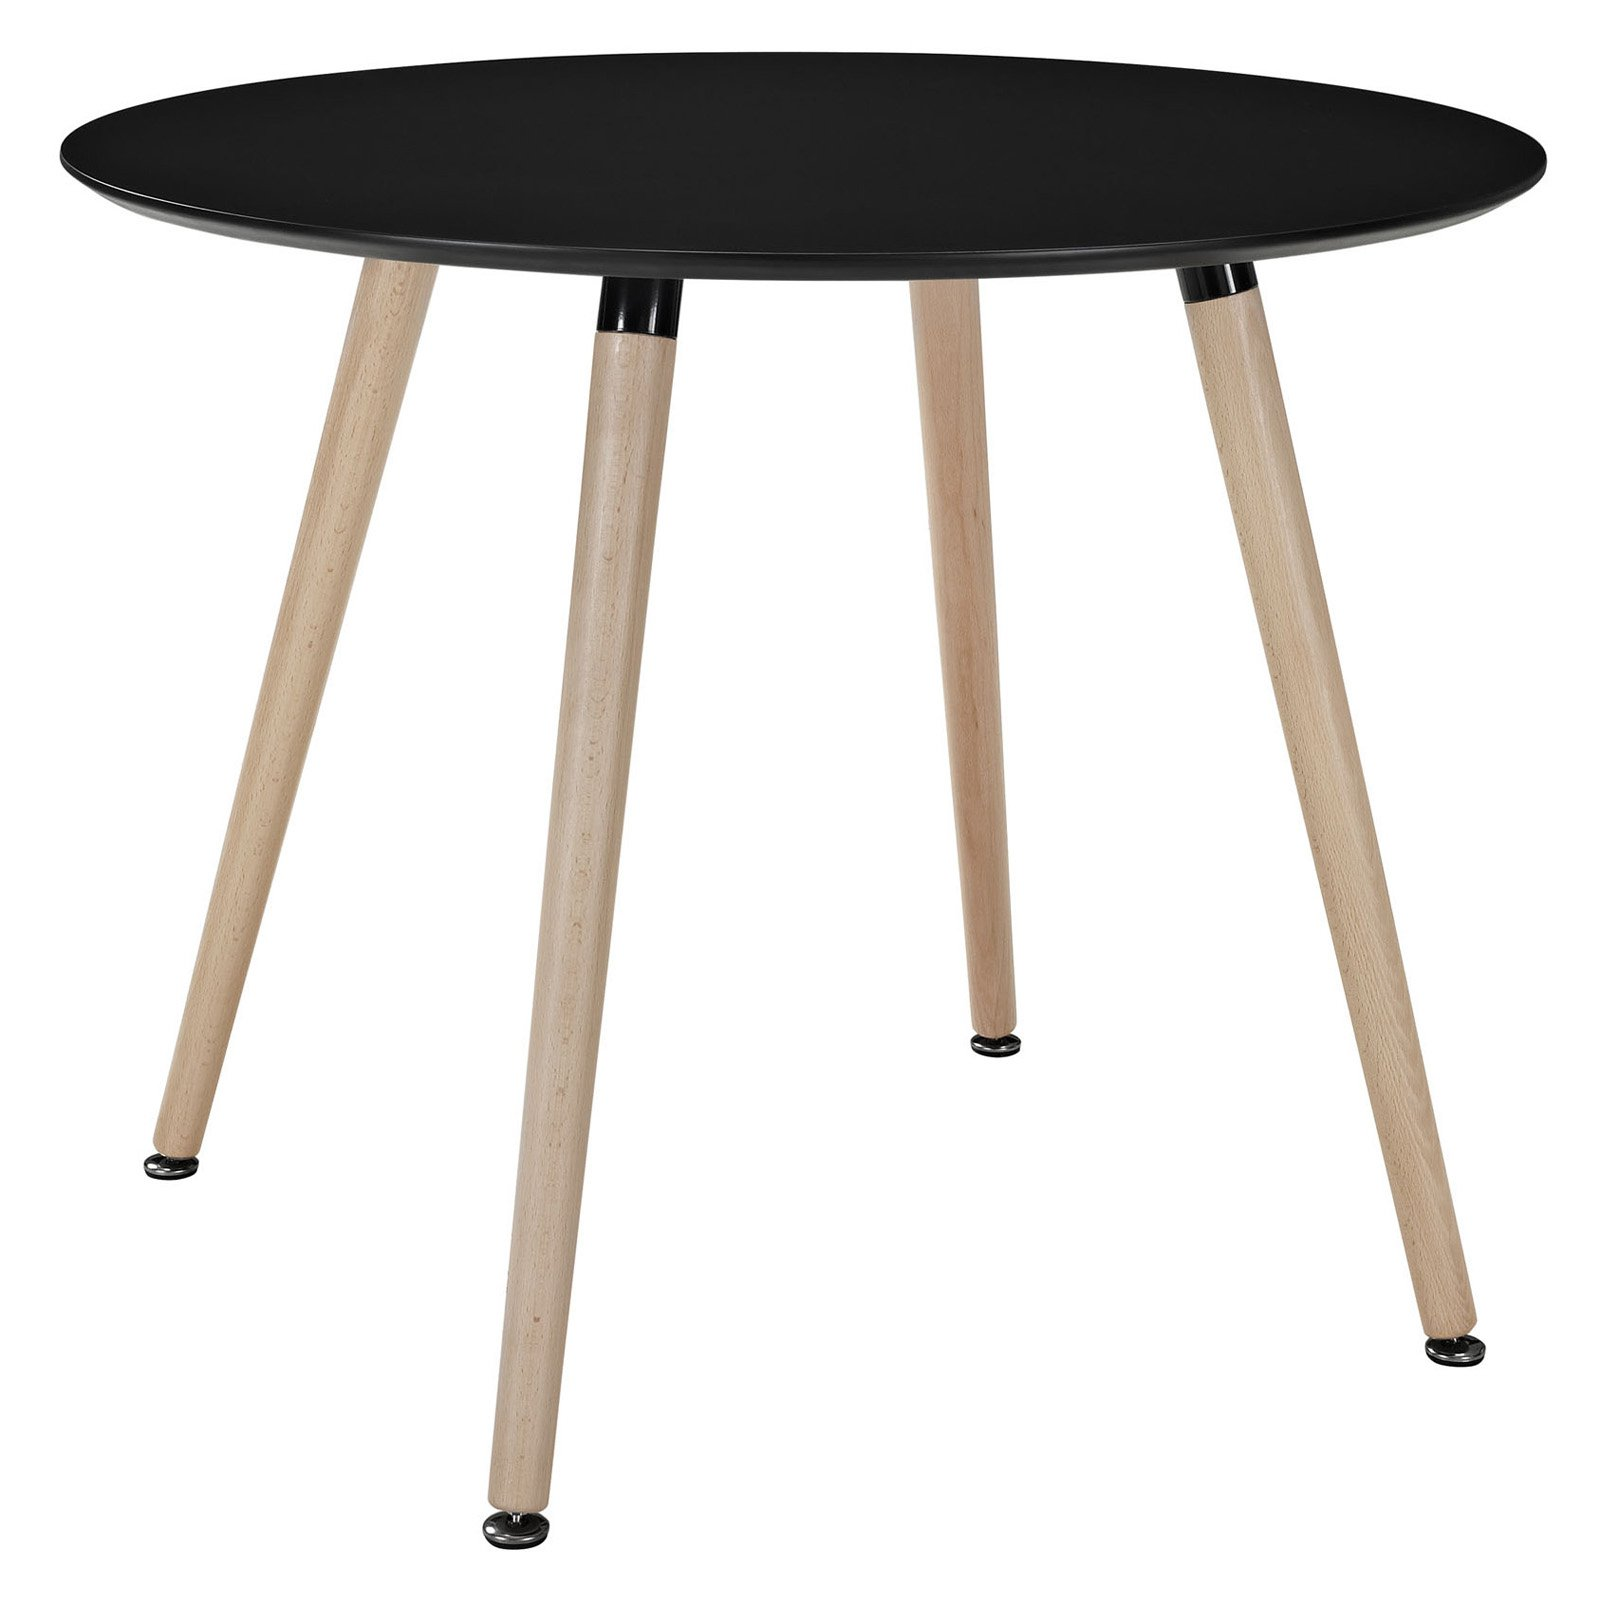 Modway Track Round Dining Table